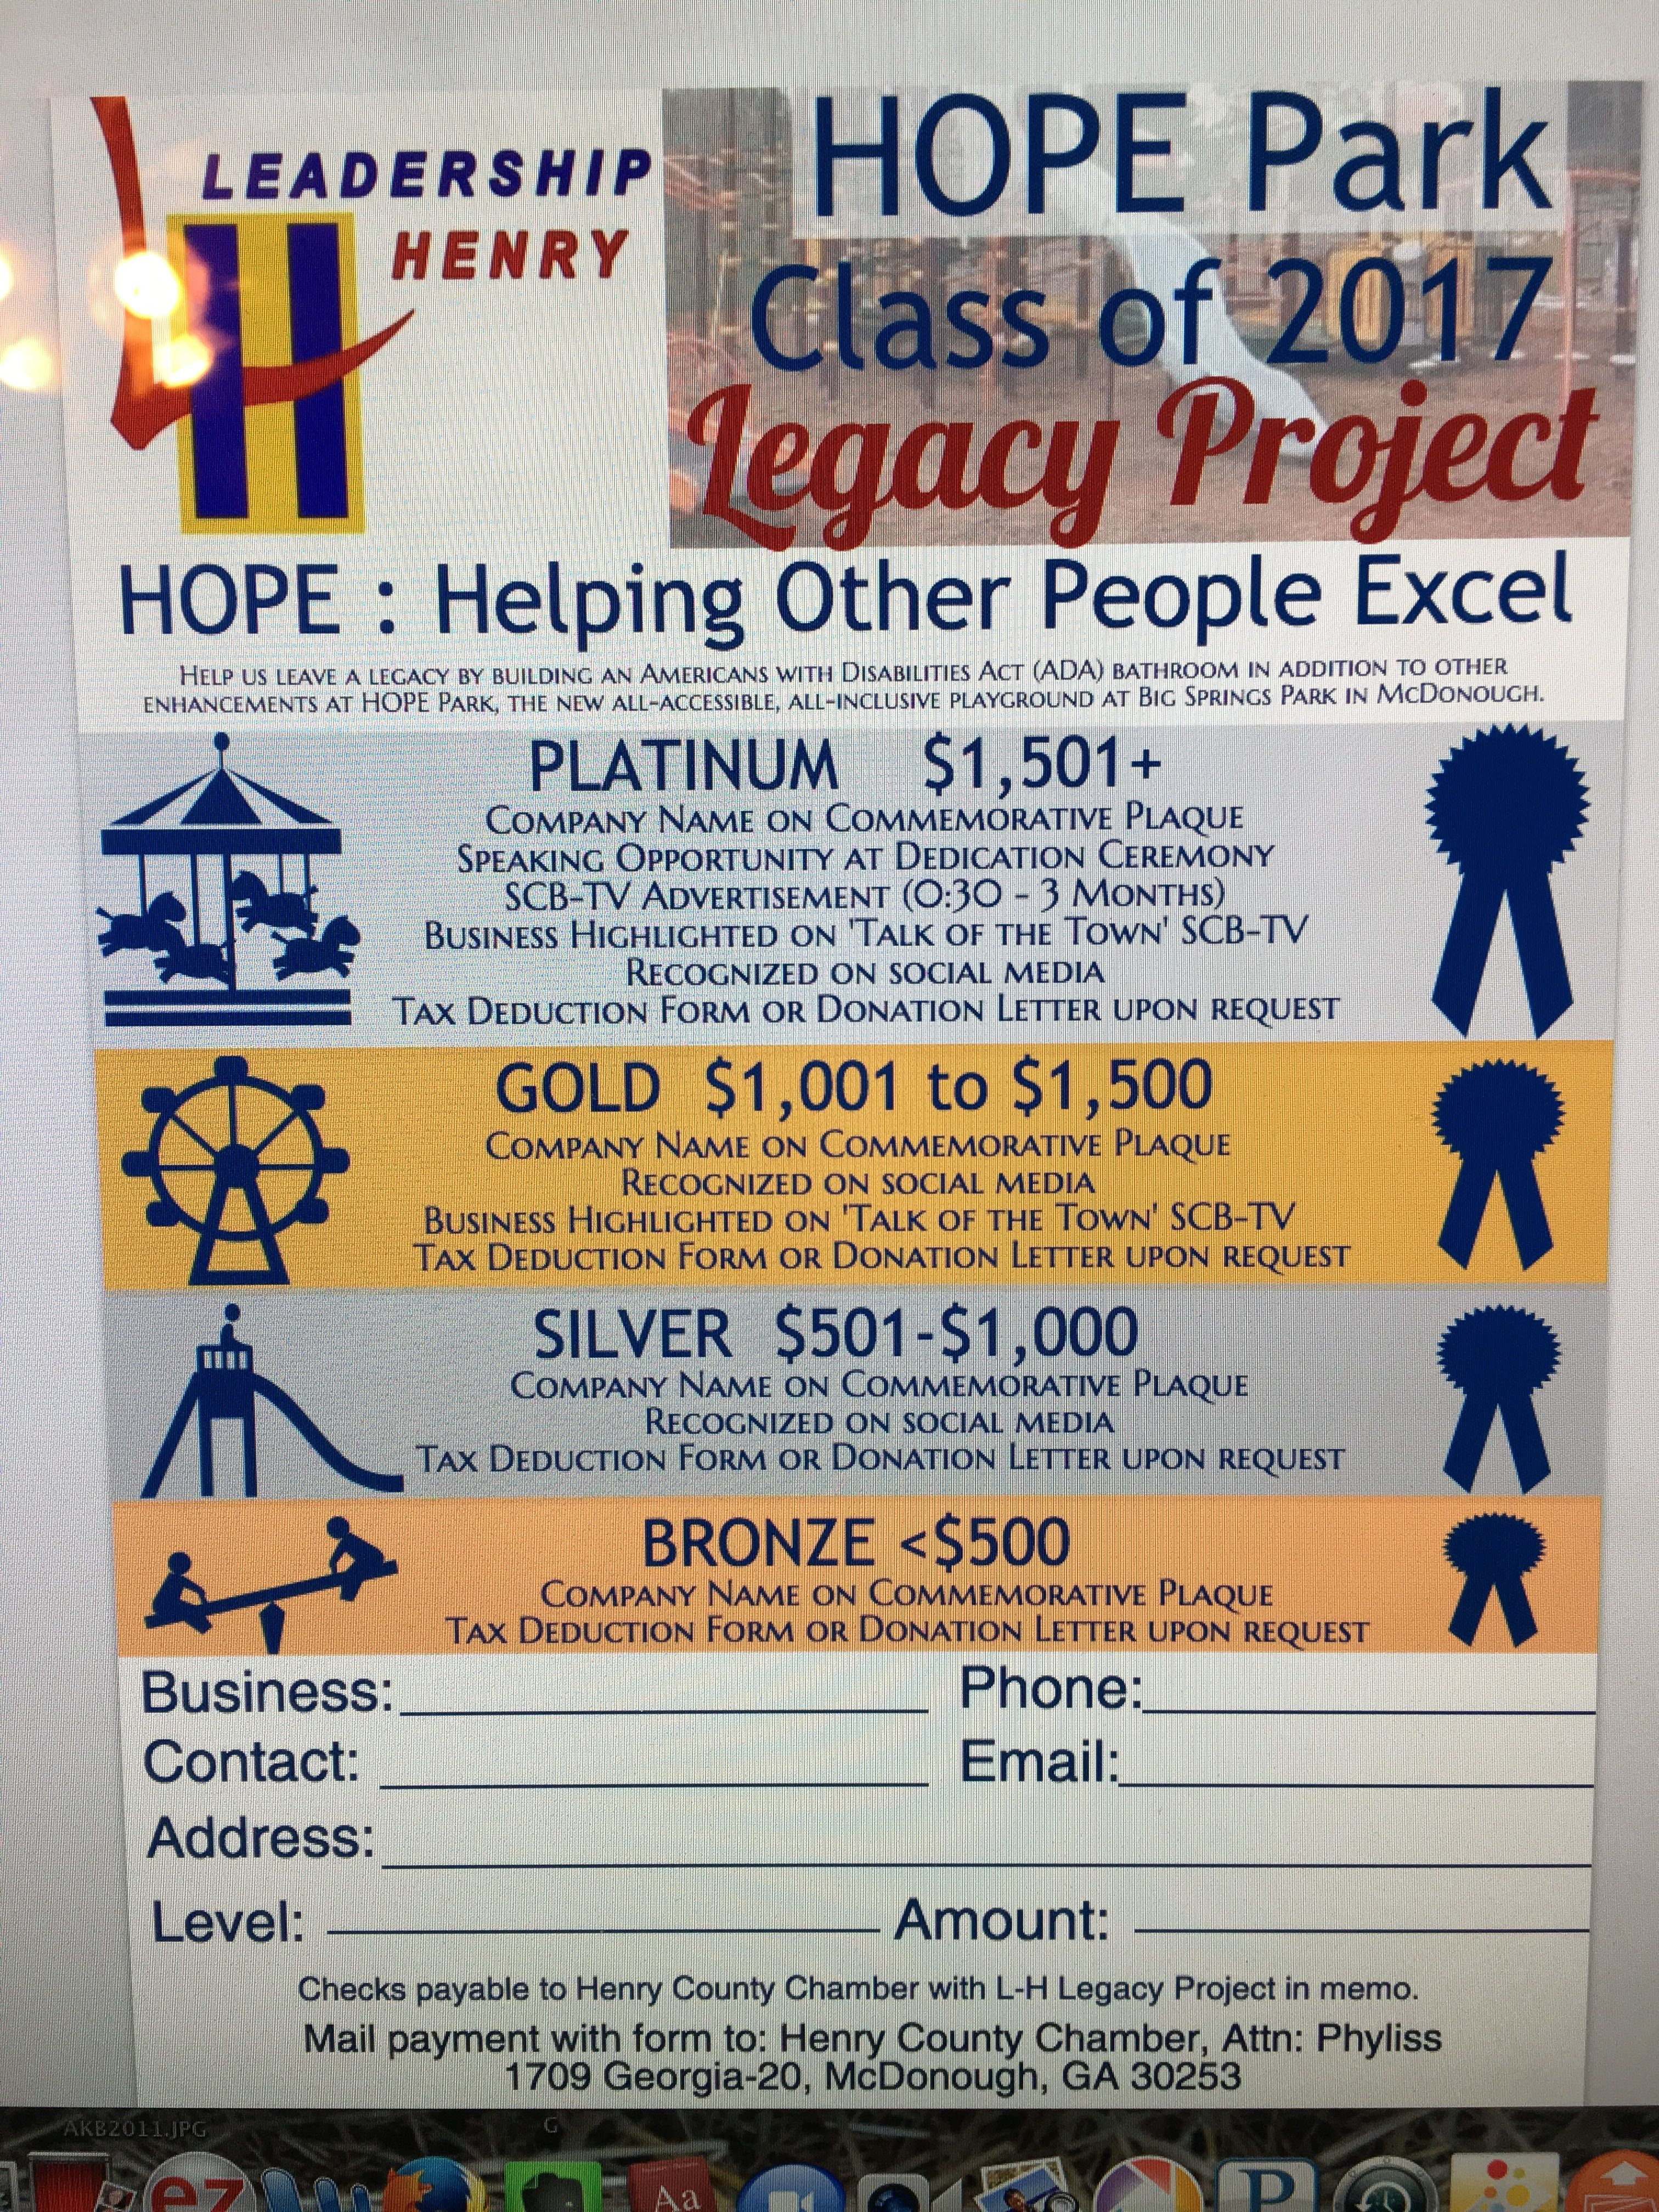 Leadership Henry Hope Park Legacy Project